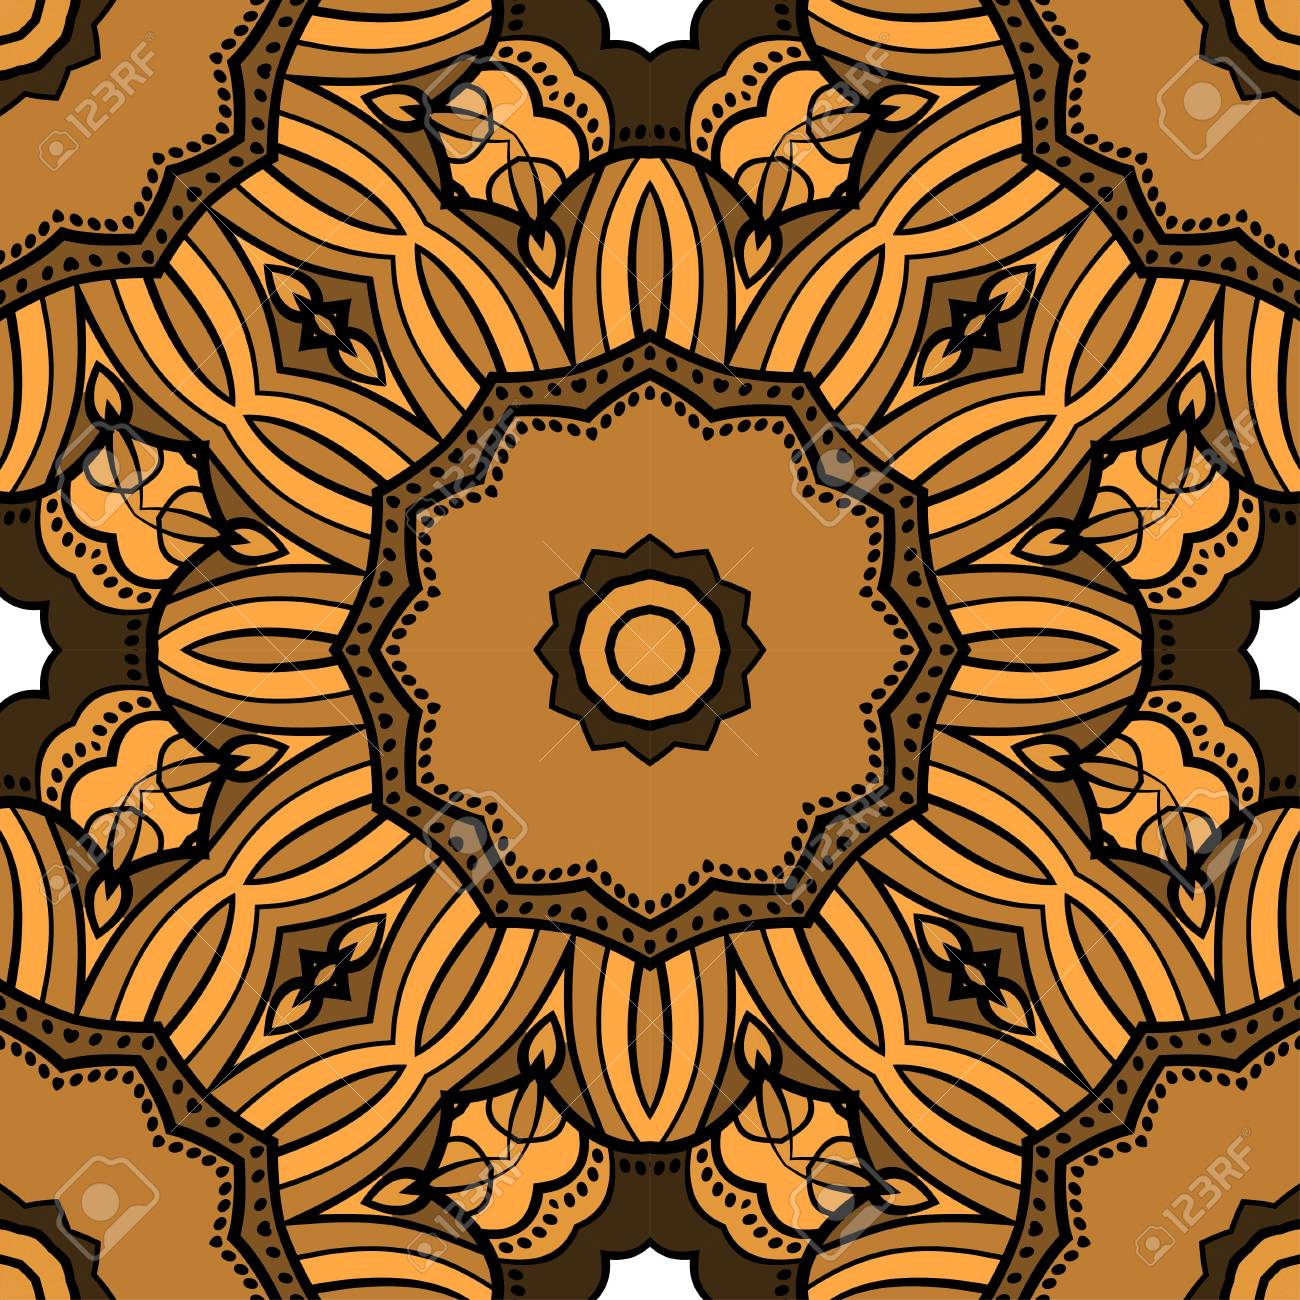 Seamless Art Deco Floral Pattern With Modern Style Ornament On